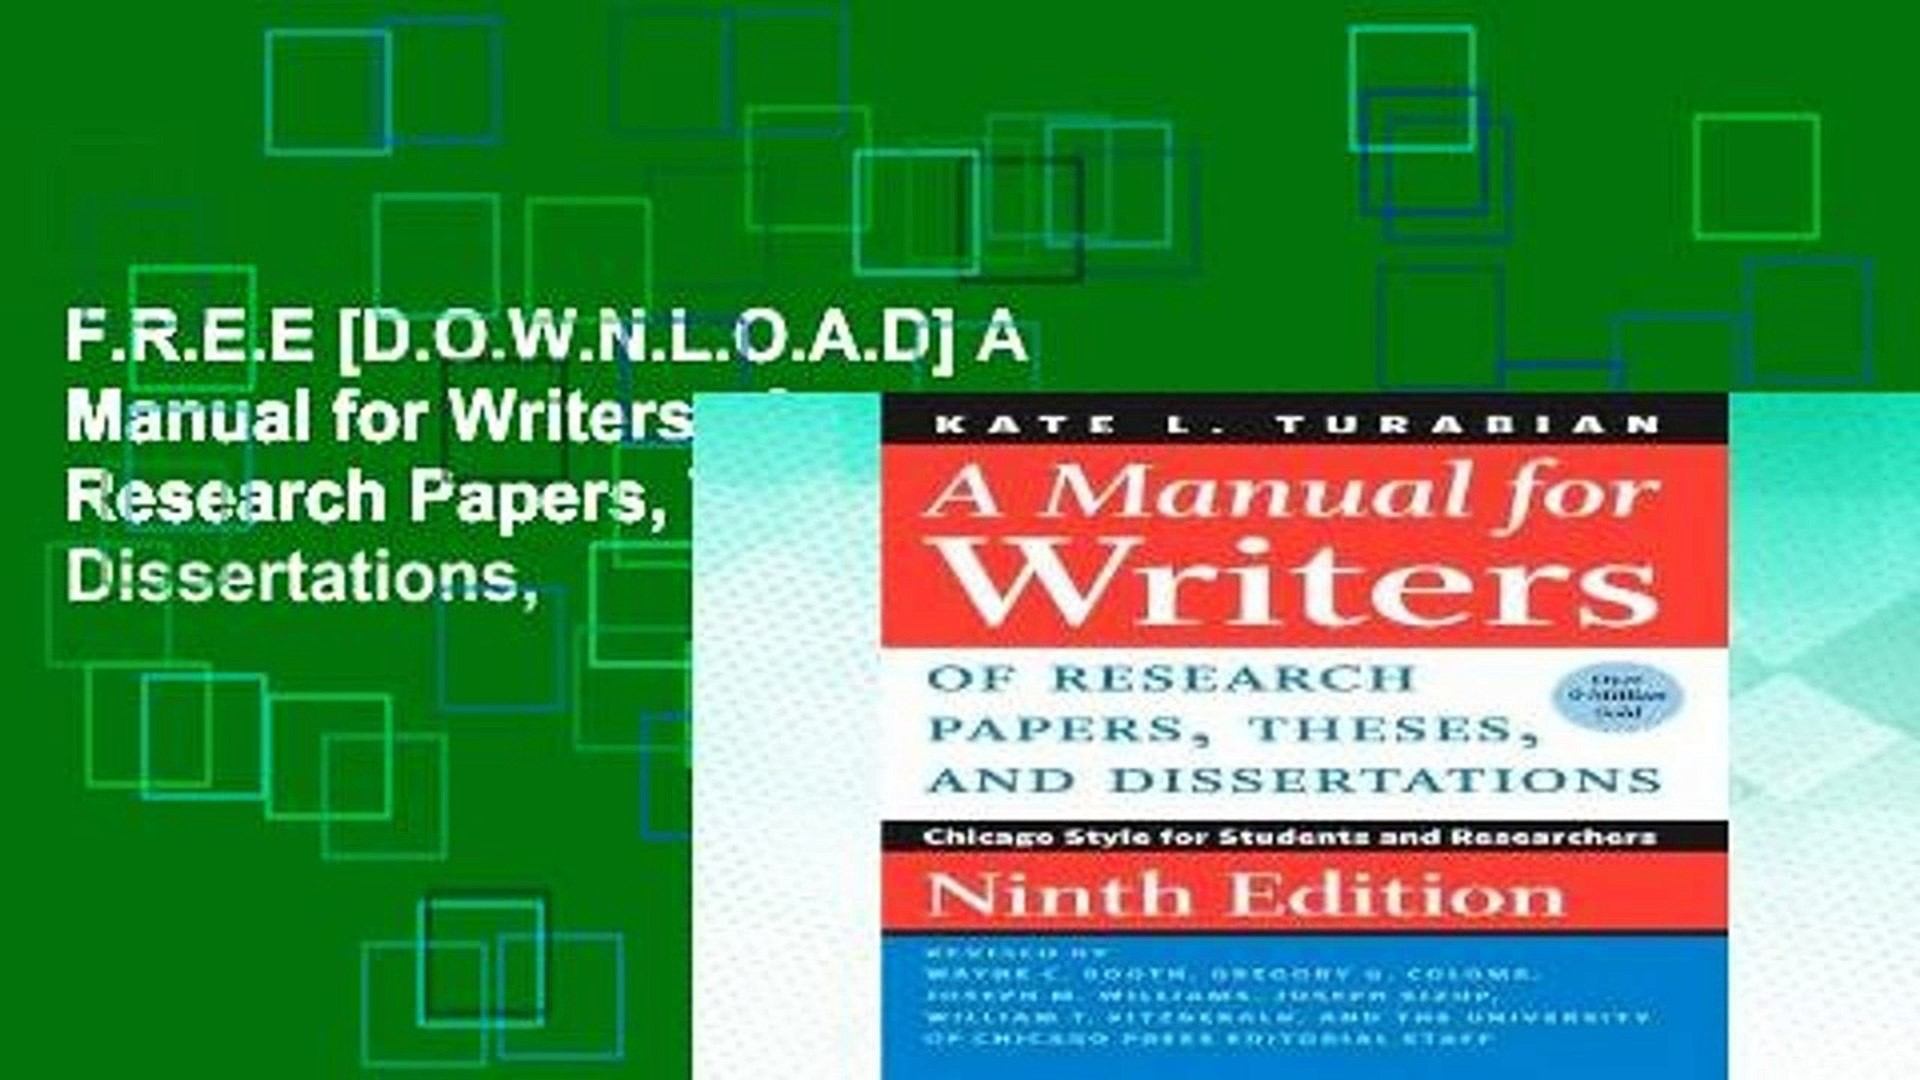 016 Manual For Writers Of Research Papers Theses And Dissertations Paper X1080 Sensational A Eighth Edition Pdf 9th 8th 1920